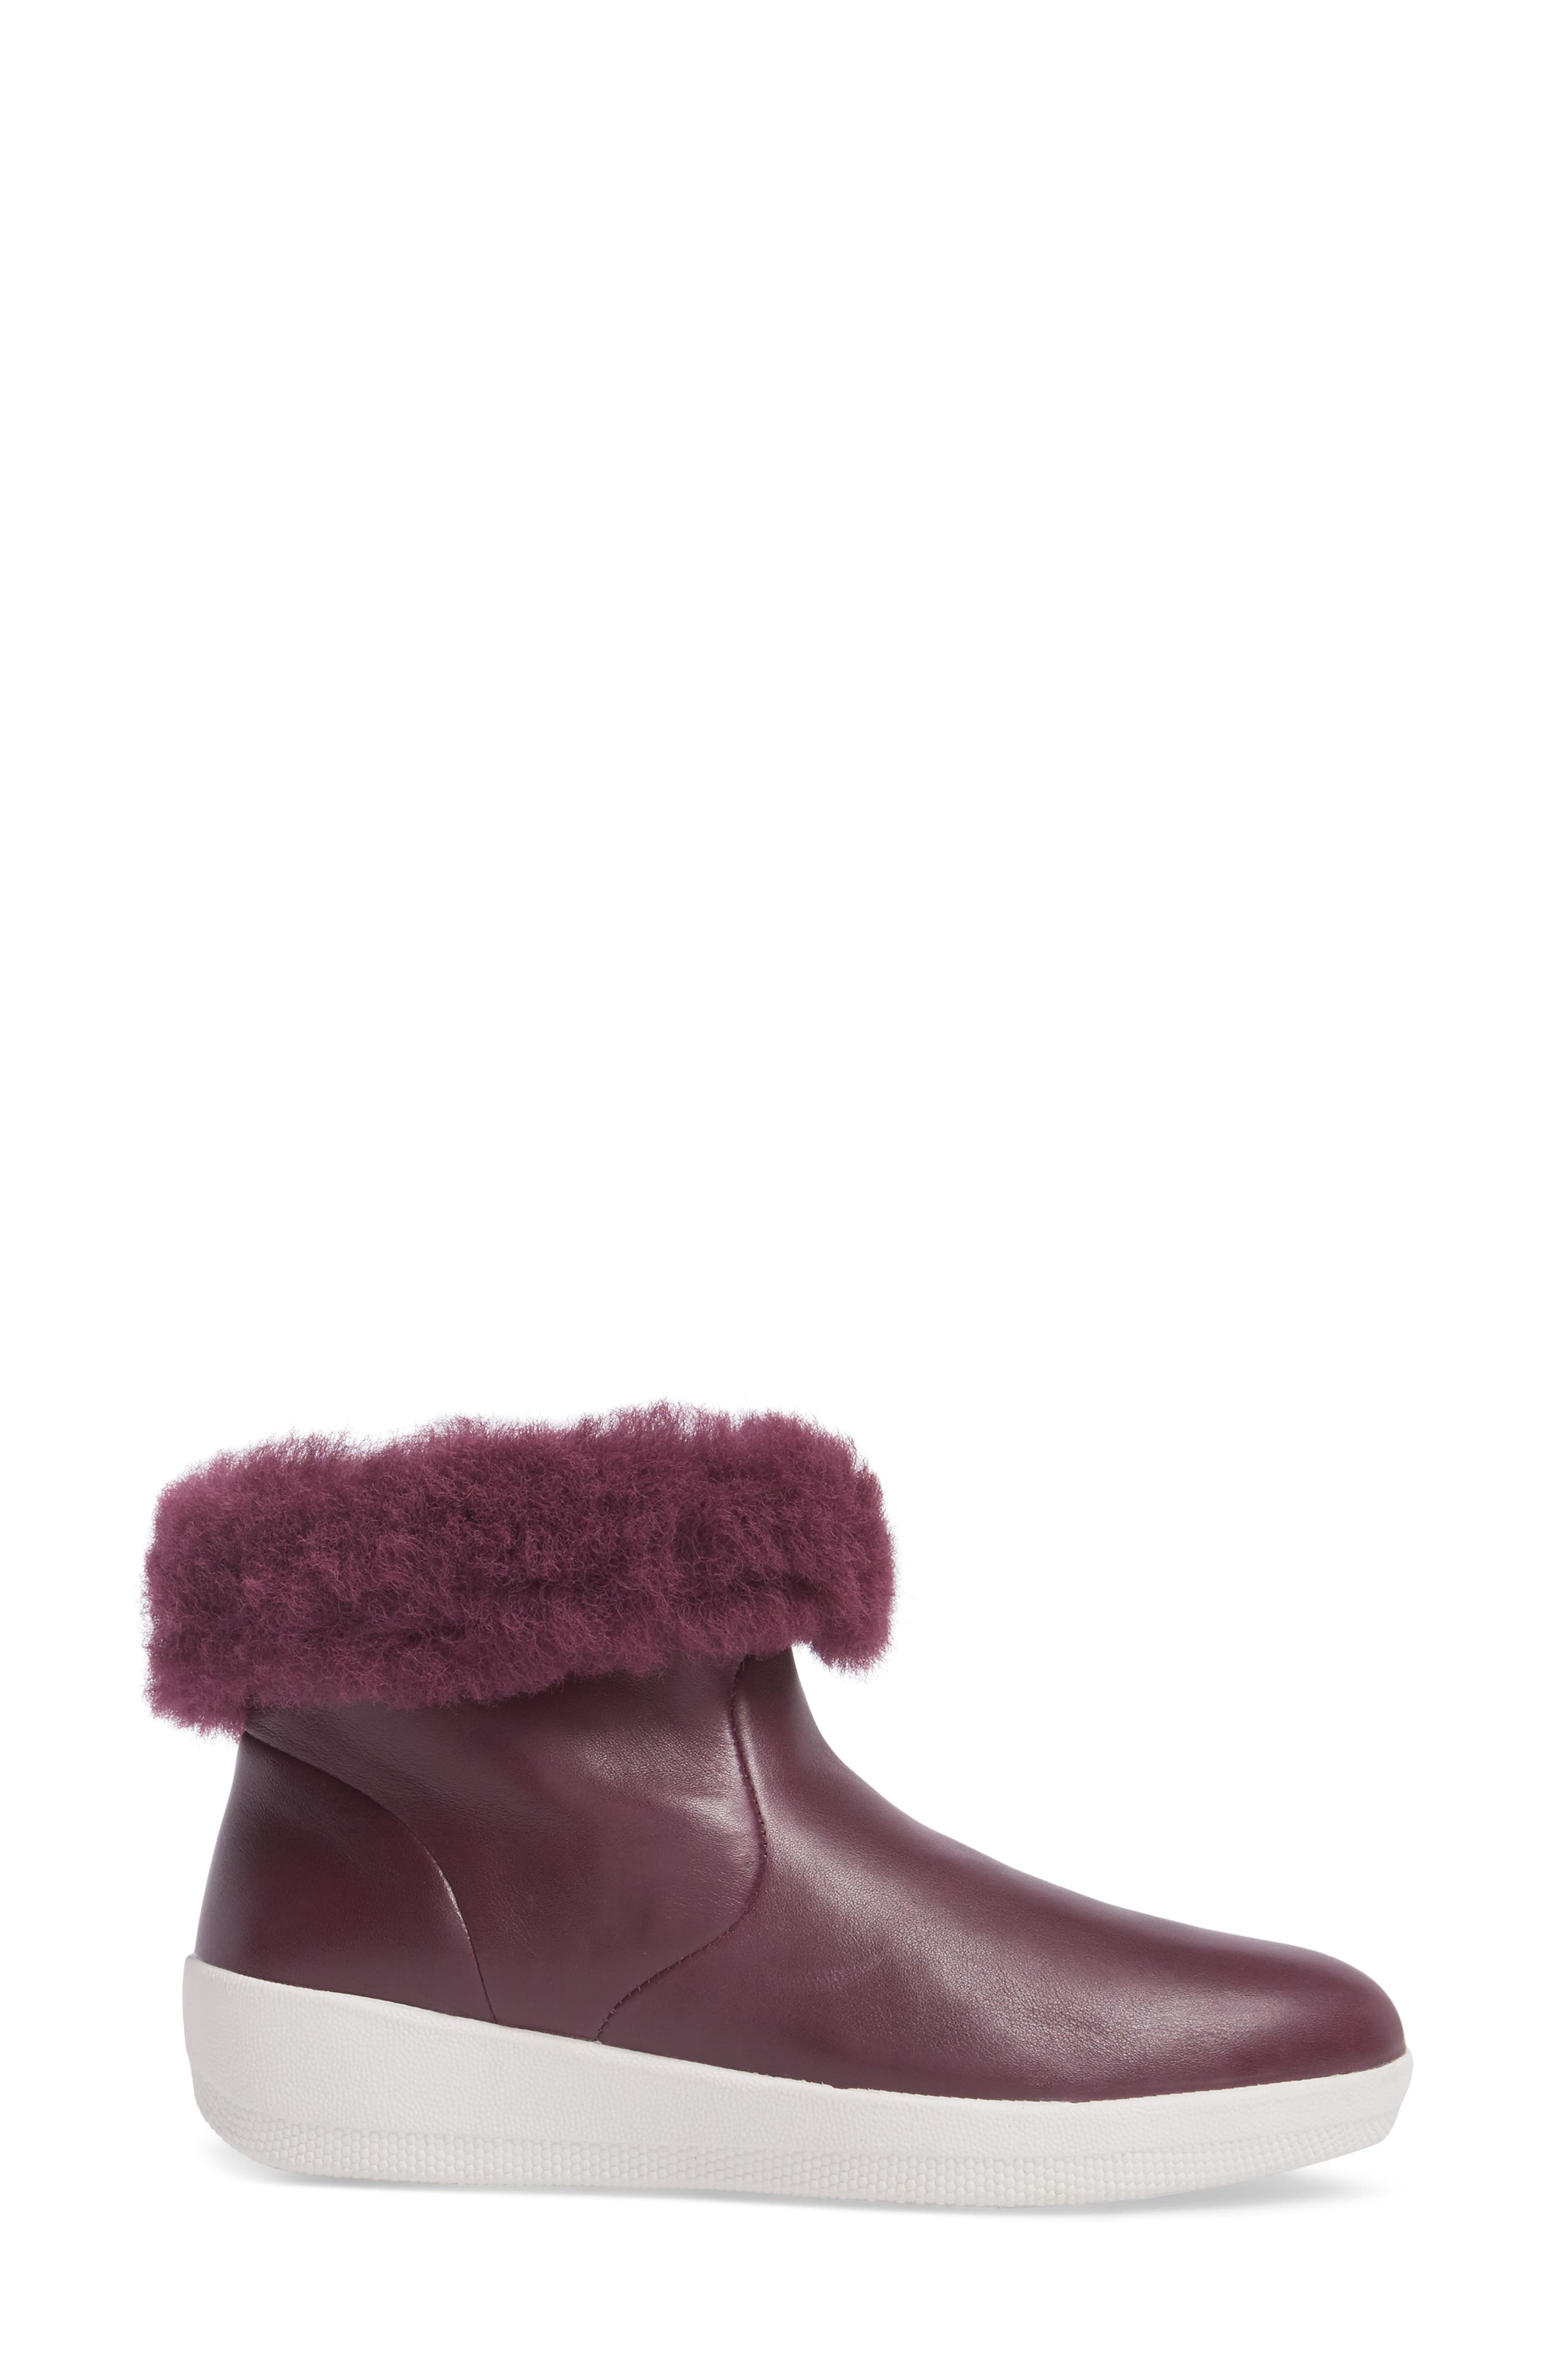 Skatebootie<sup>™</sup> with Genuine Shearling Cuff,                             Alternate thumbnail 6, color,